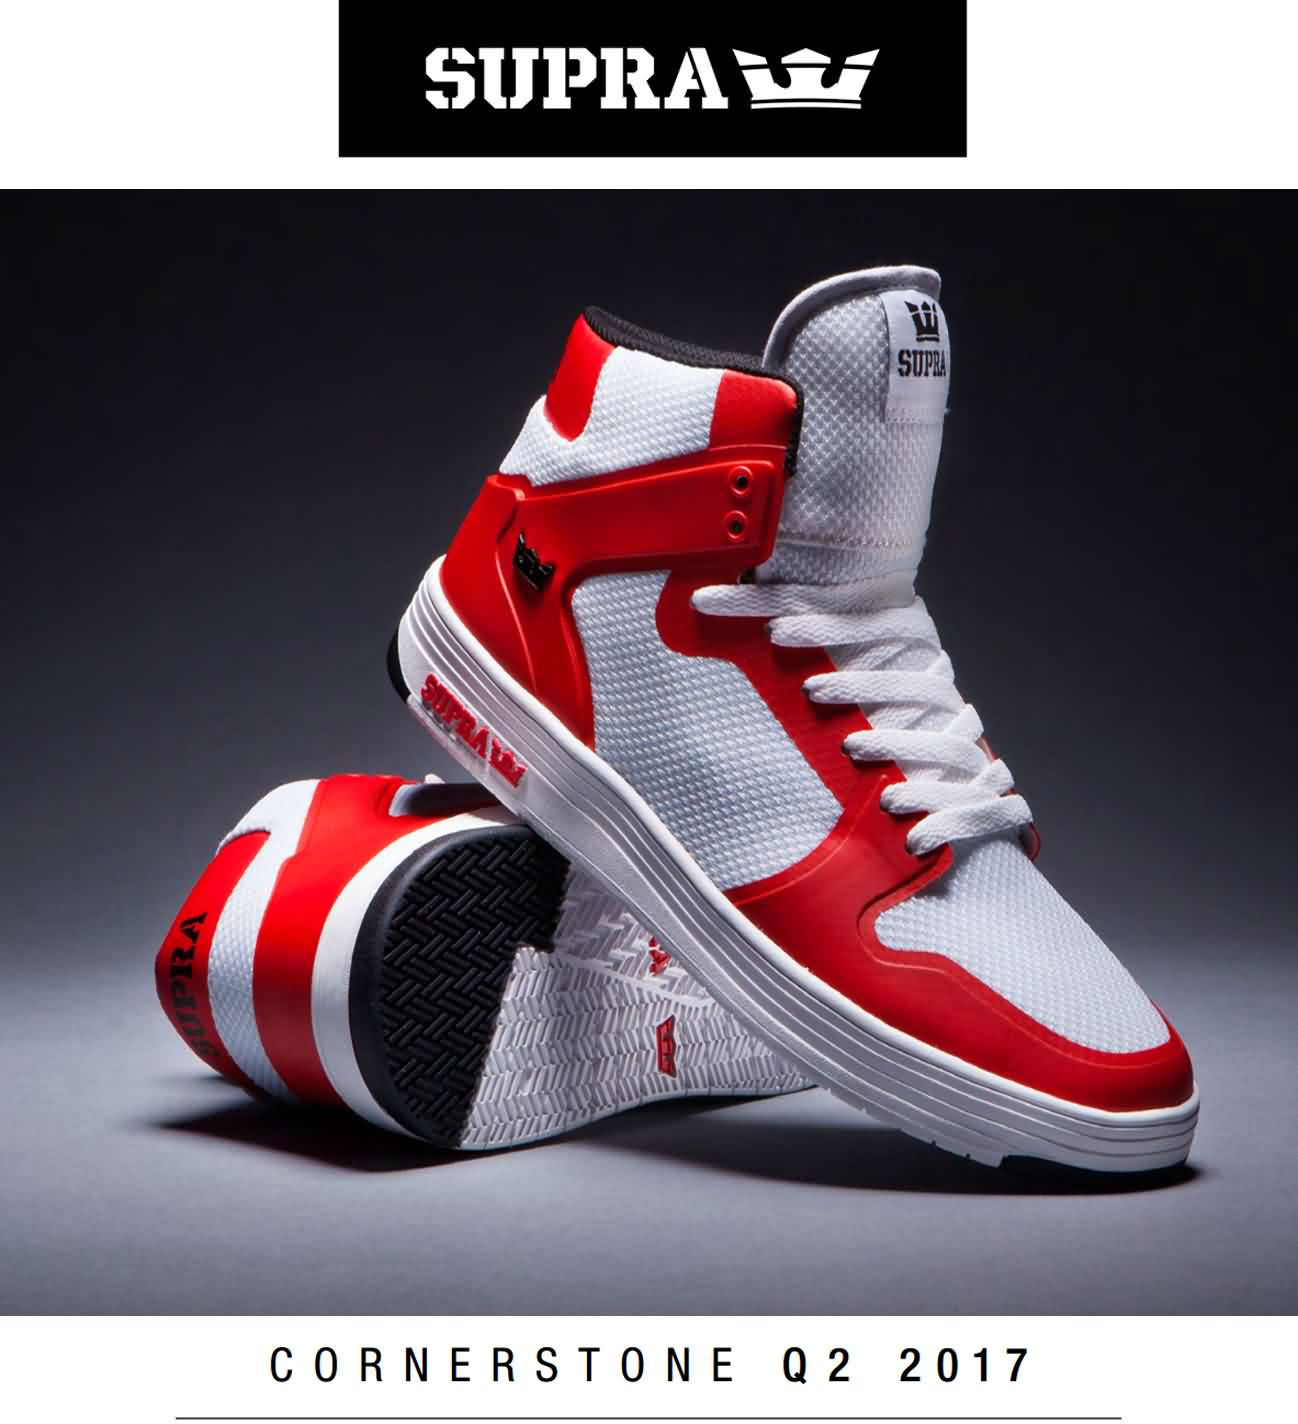 Supra Mens Summer 2017 Q2 Cornerstone Sports Footwear Catalog